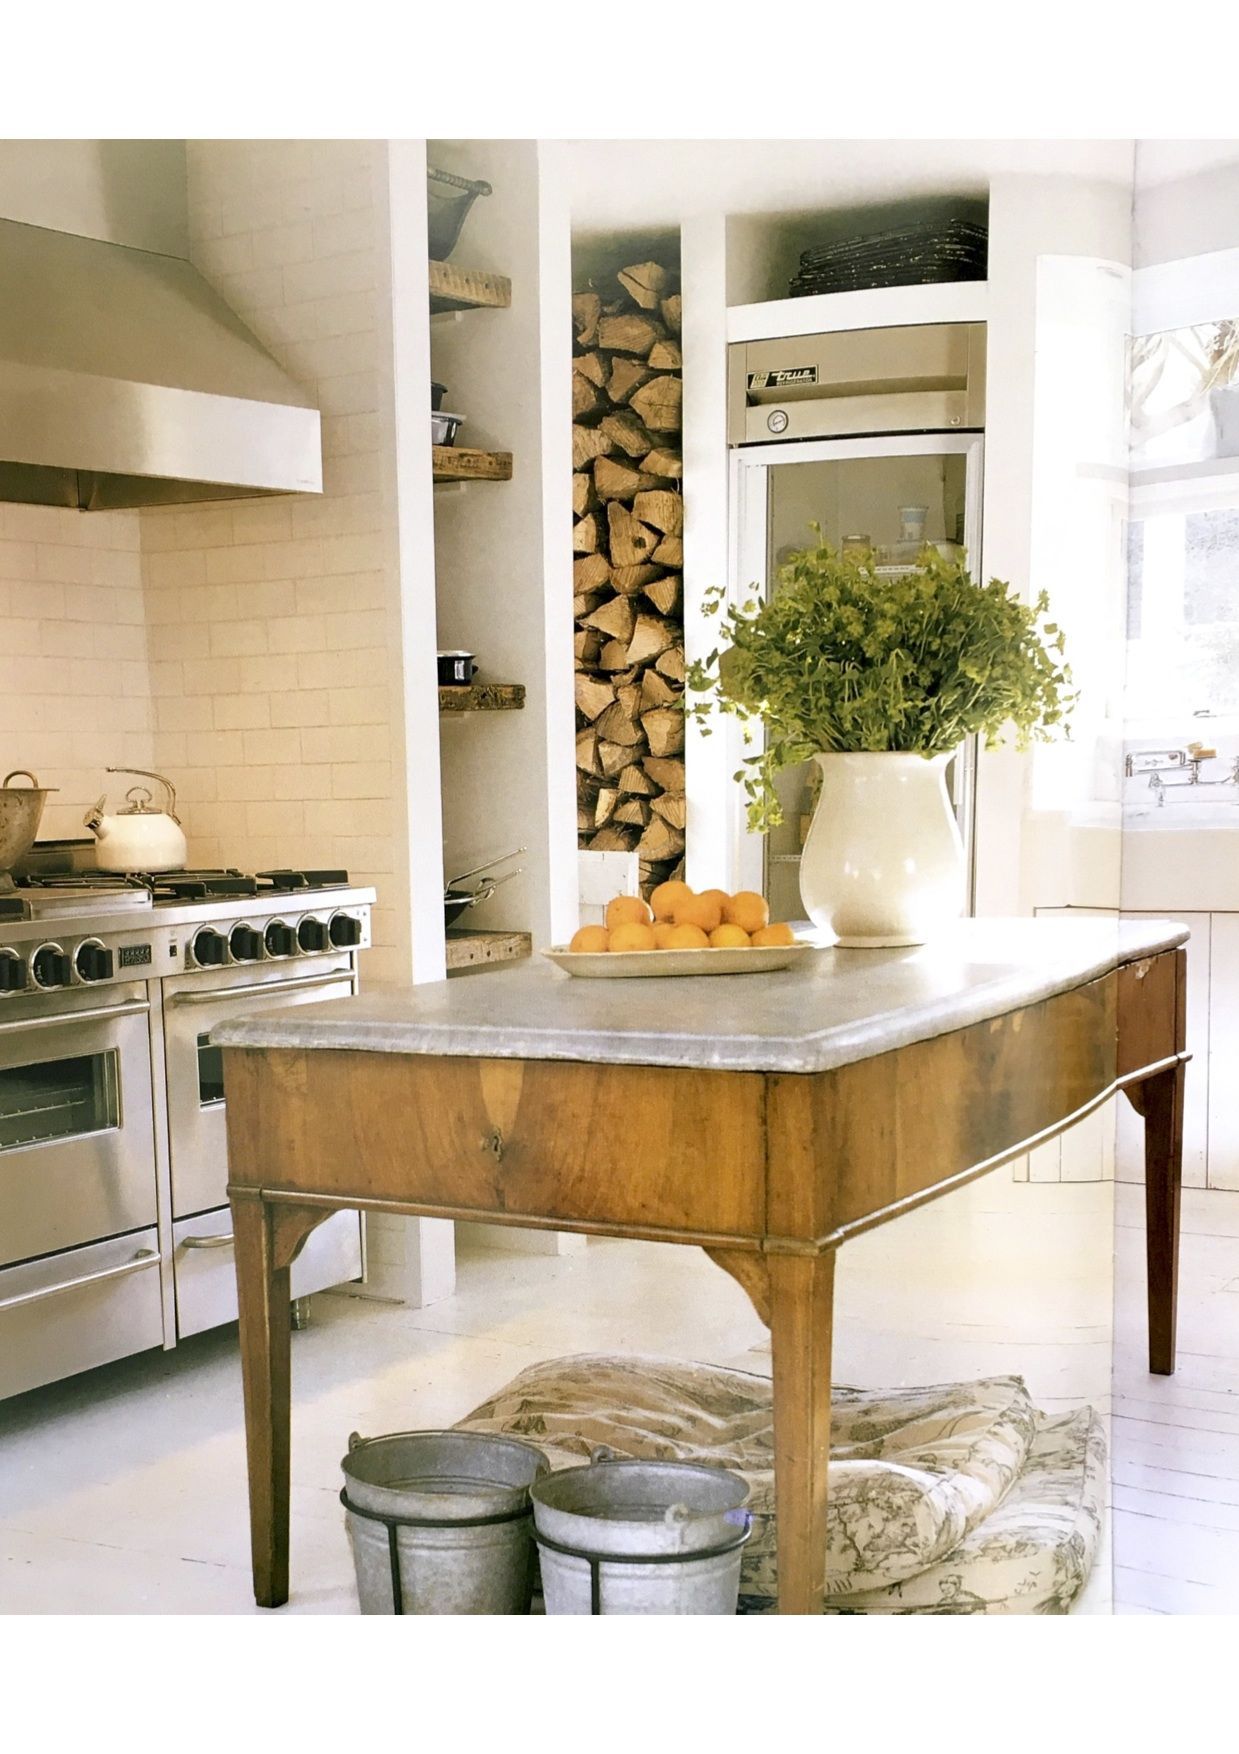 Mudroom - Table